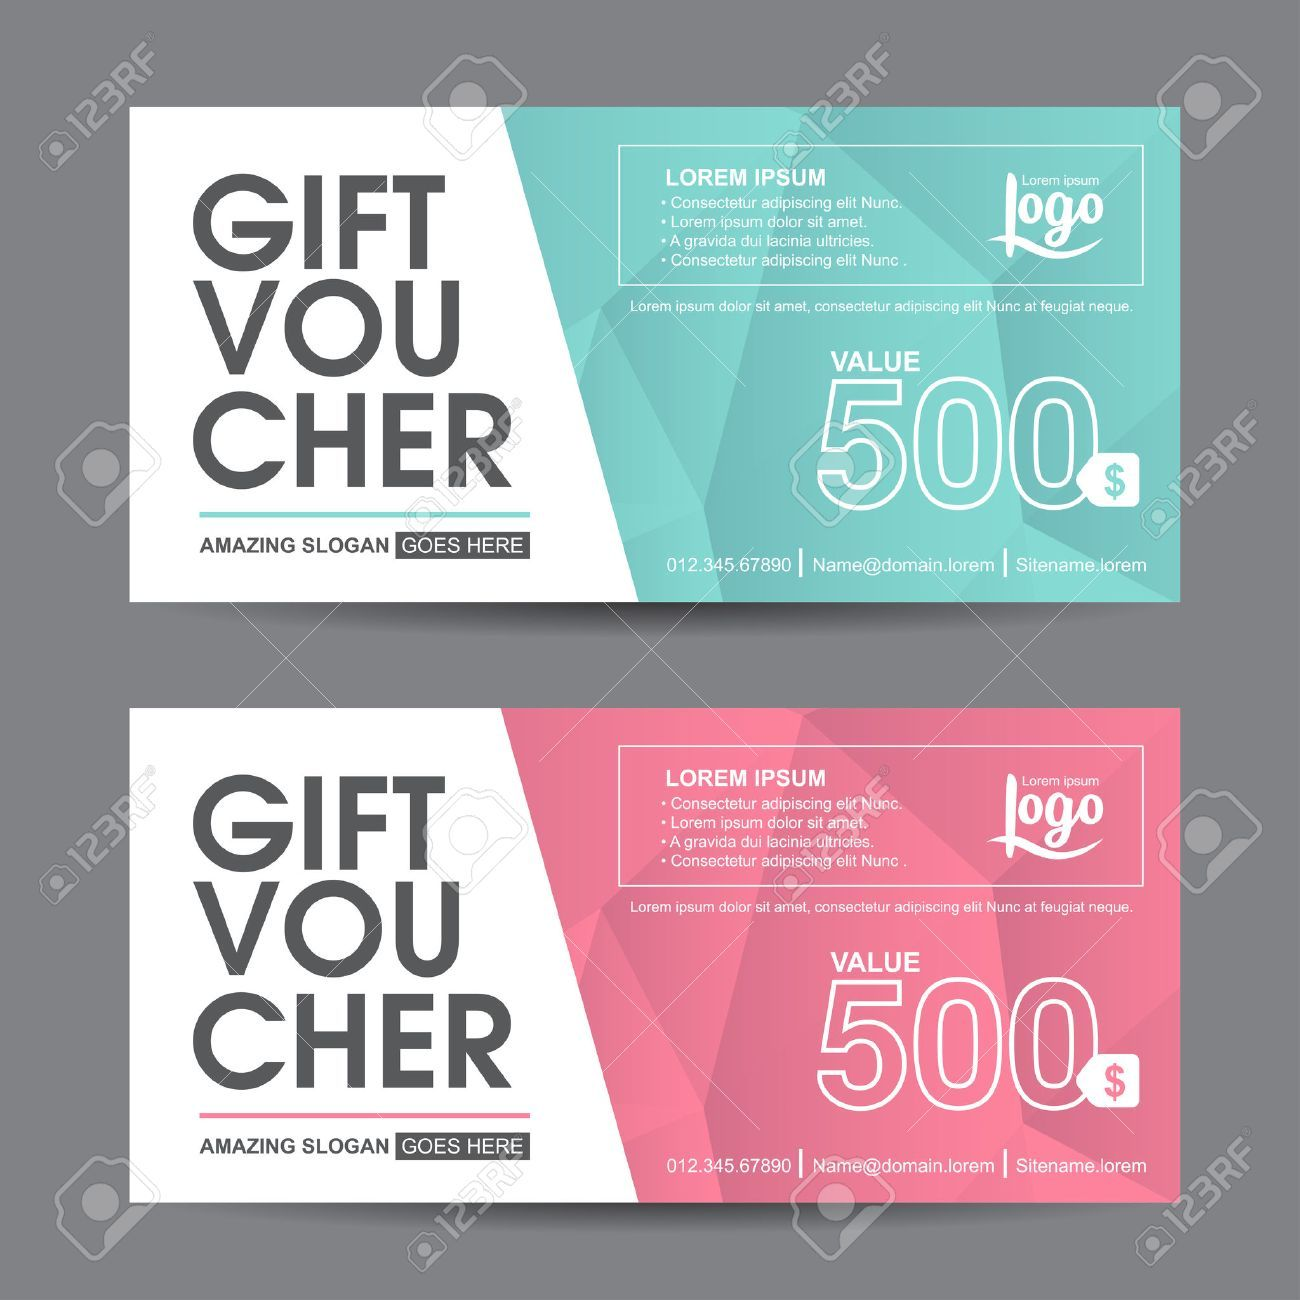 Gift voucher template with colorful patterncute gift voucher gift voucher template with colorful patterncute gift voucher certificate coupon design template collection gift certificate business card banner calling yelopaper